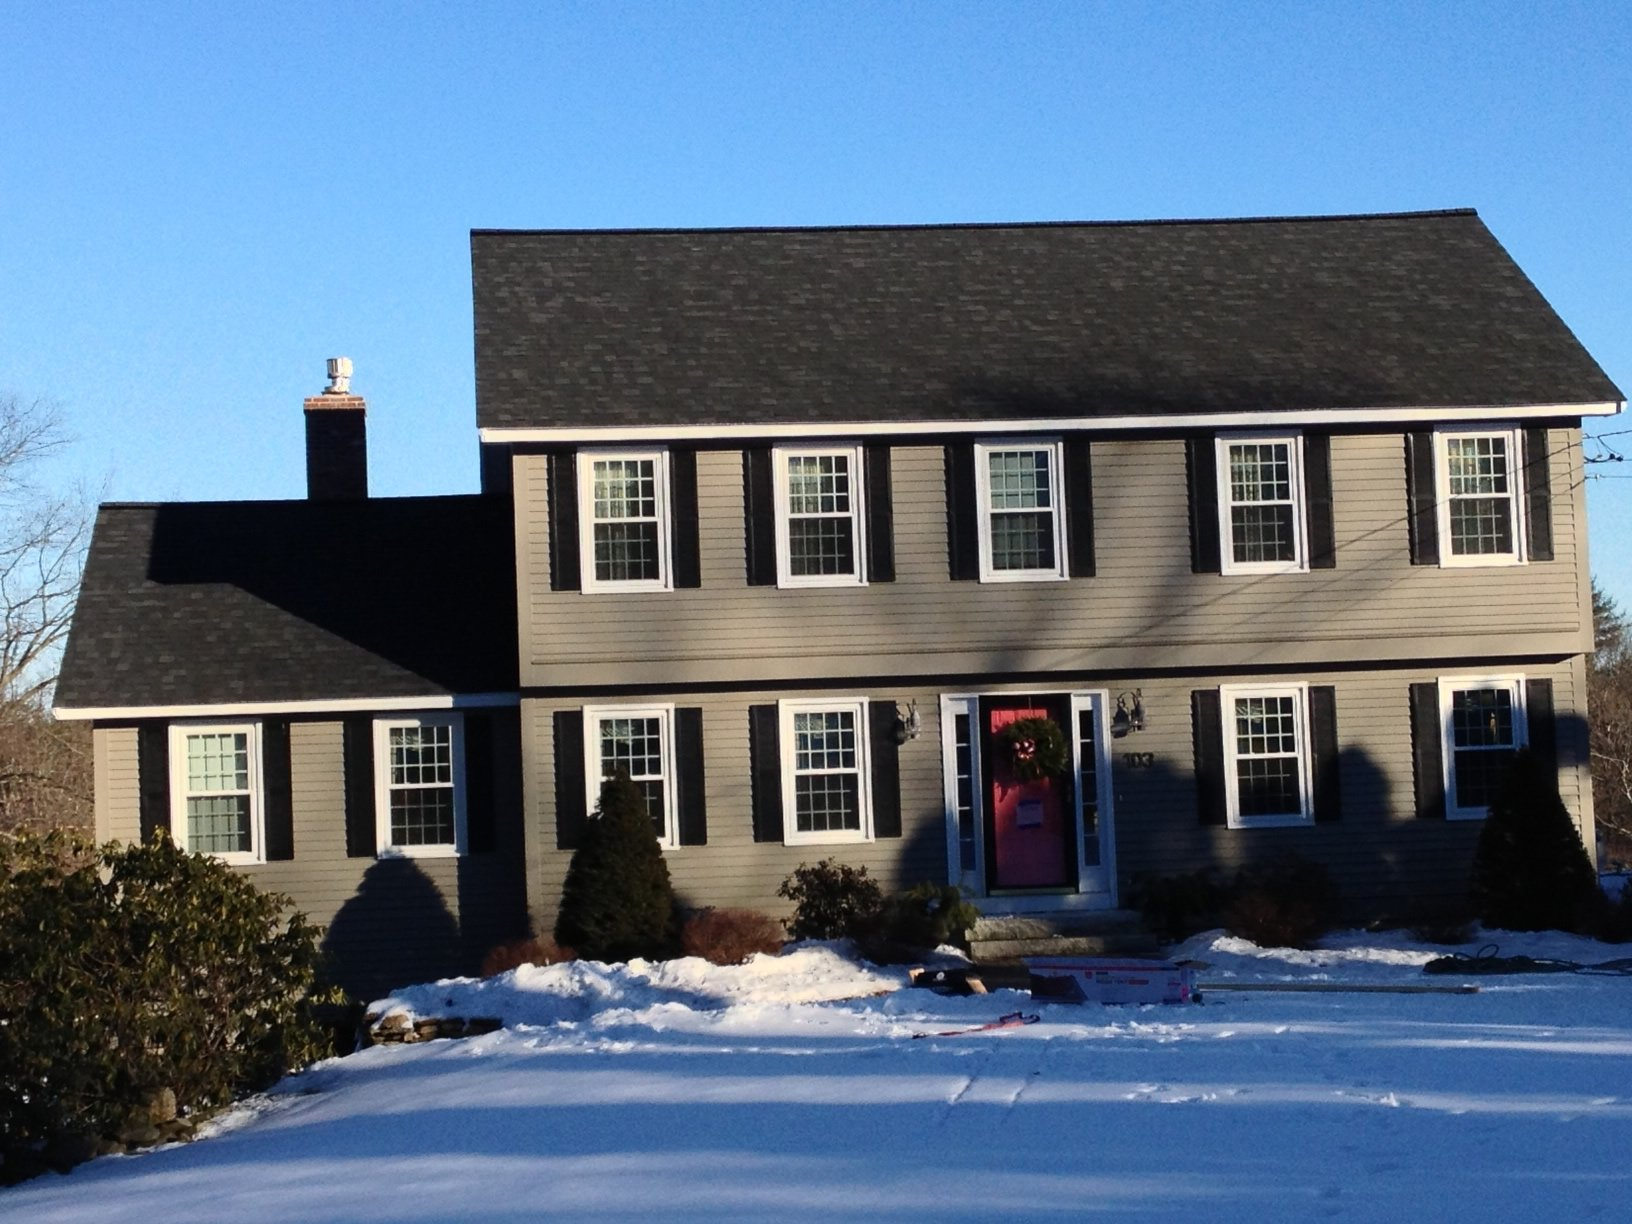 Owens Corning Onyx Black Roof In Dunstable, MA